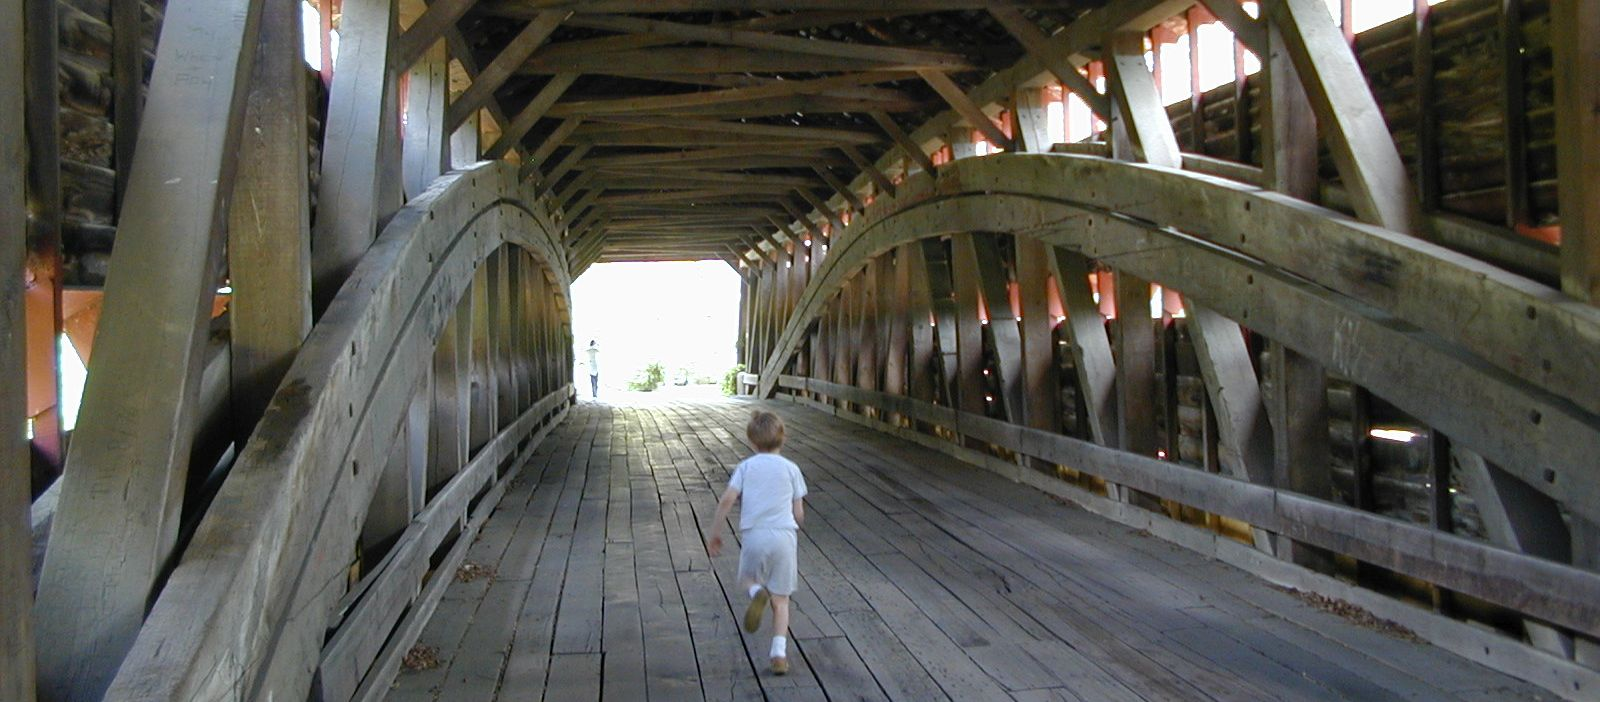 The Dreibelbis Station Bridge is a classic Burr arch truss covered bridge spanning Maiden Creek south of Lenhartsville, Pennsylvania.